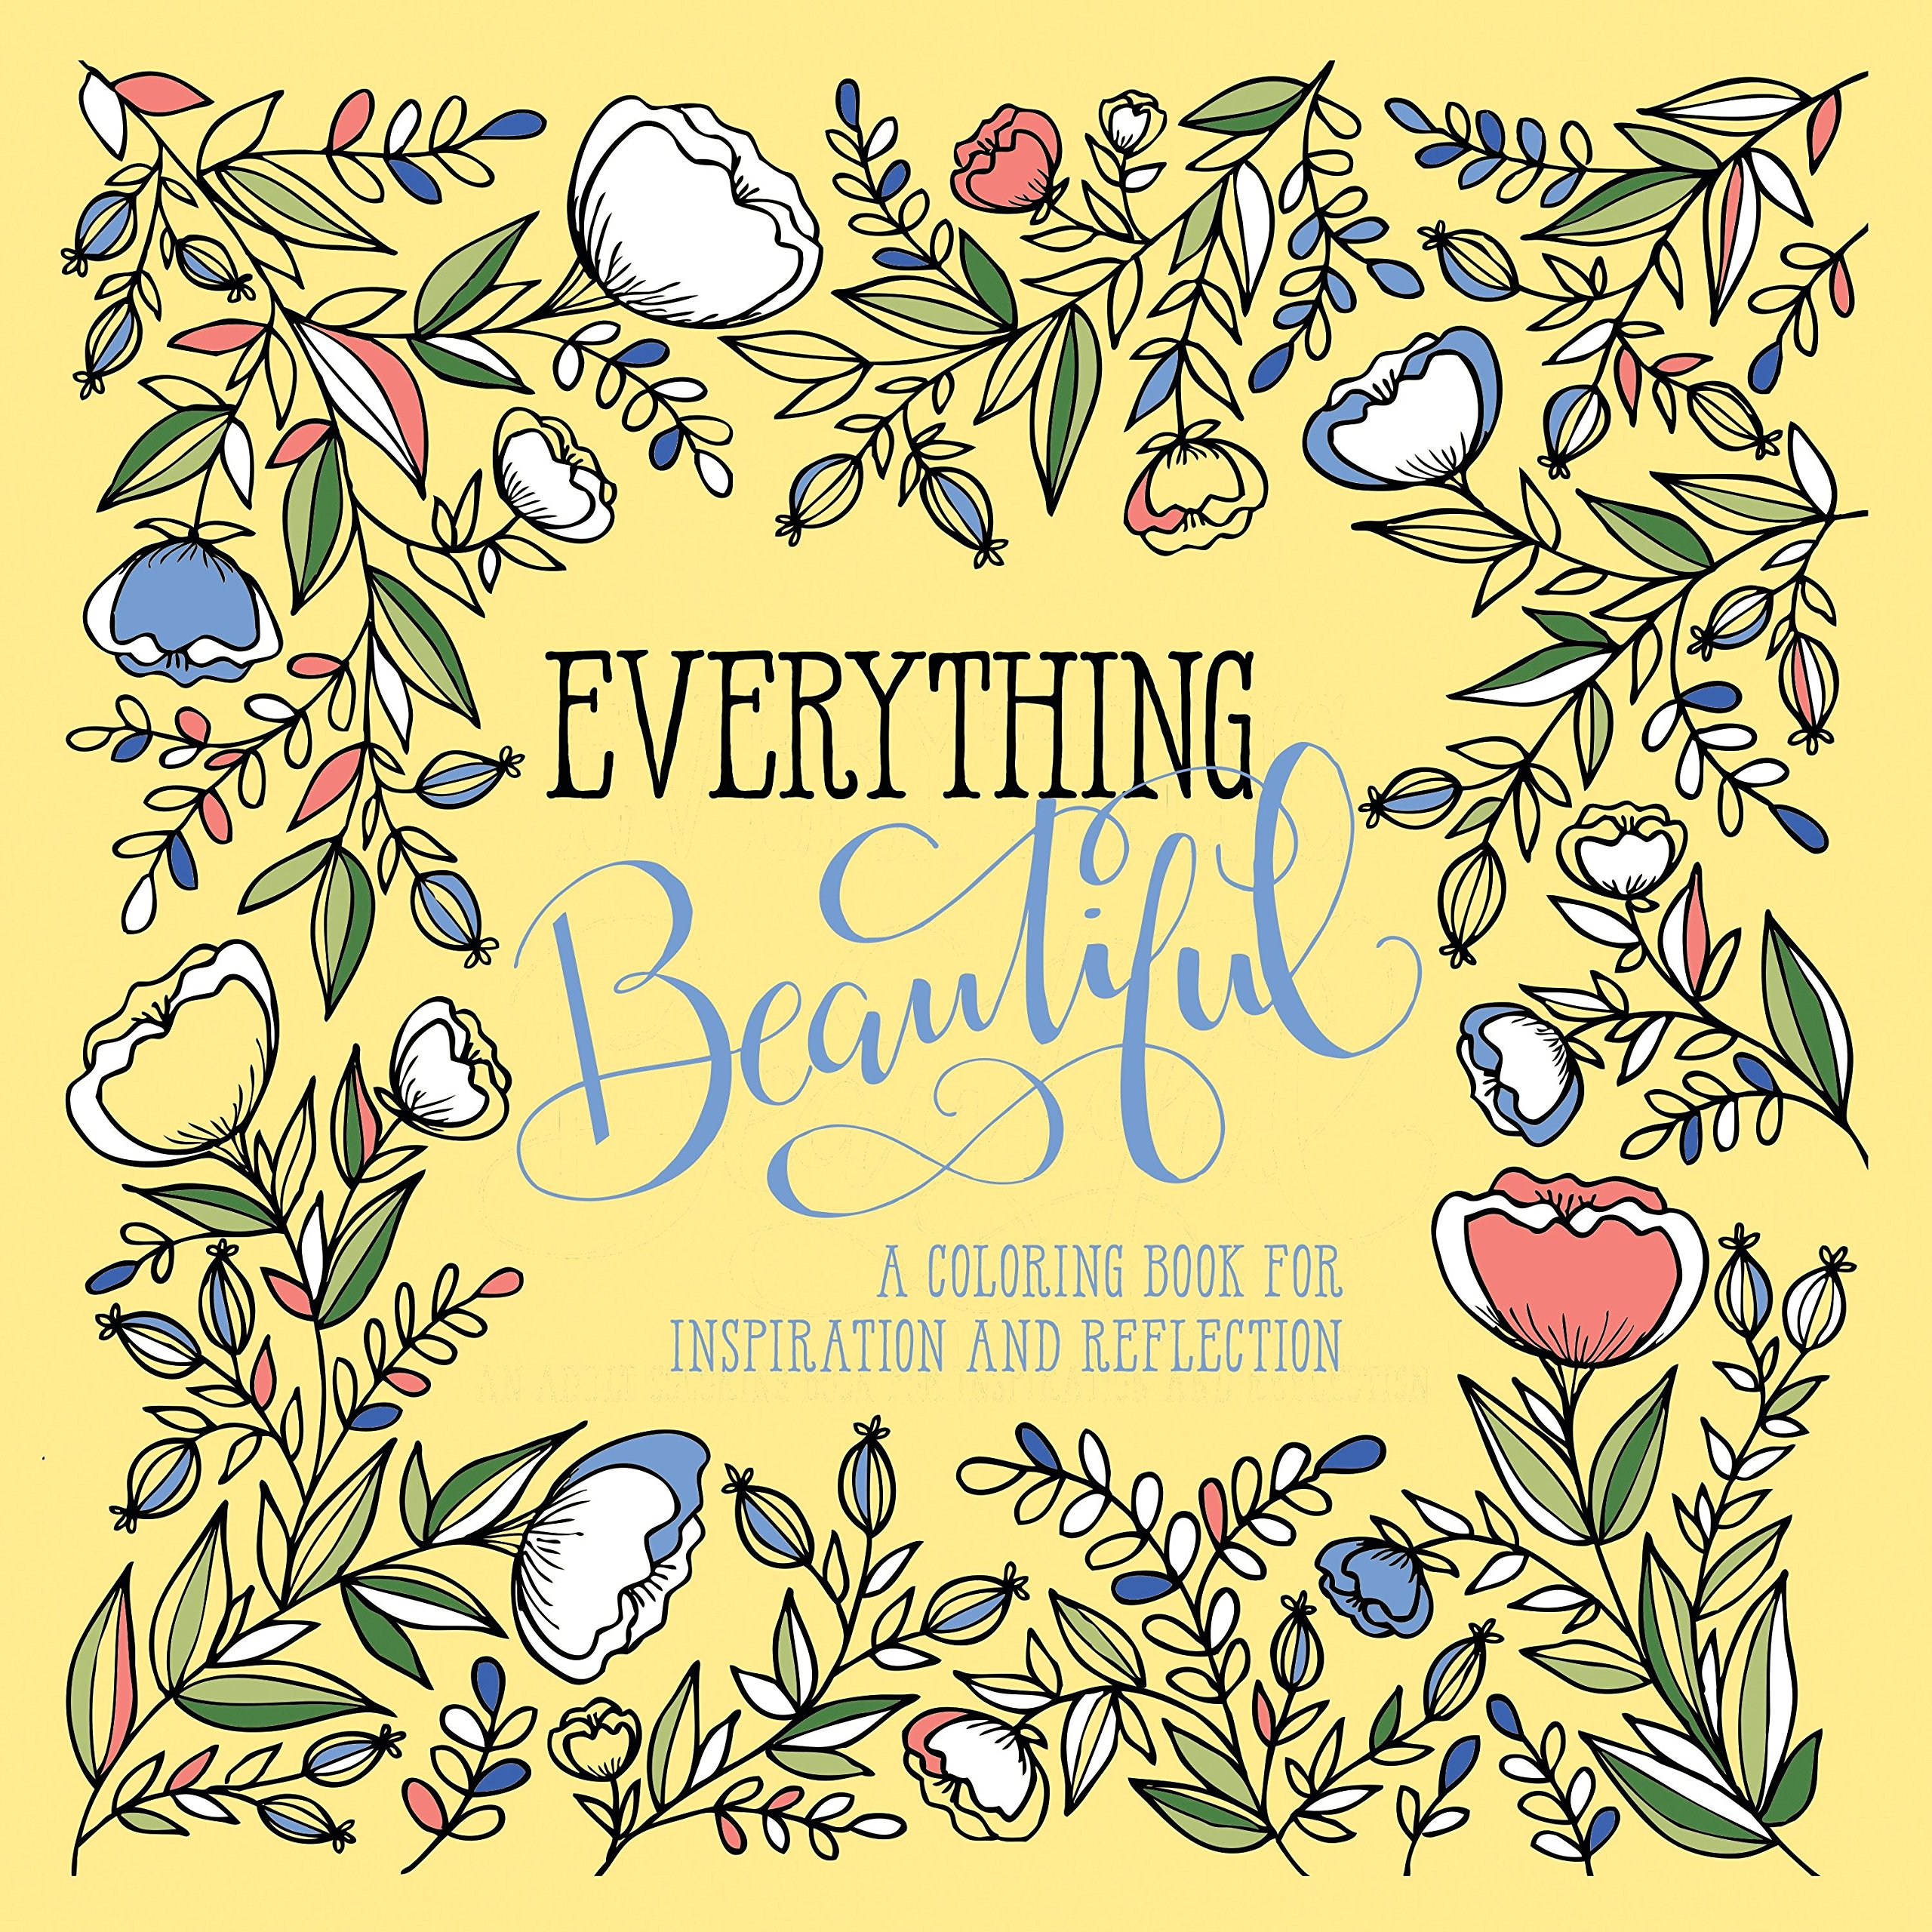 - Everything Beautiful: A Coloring Book For Reflection And